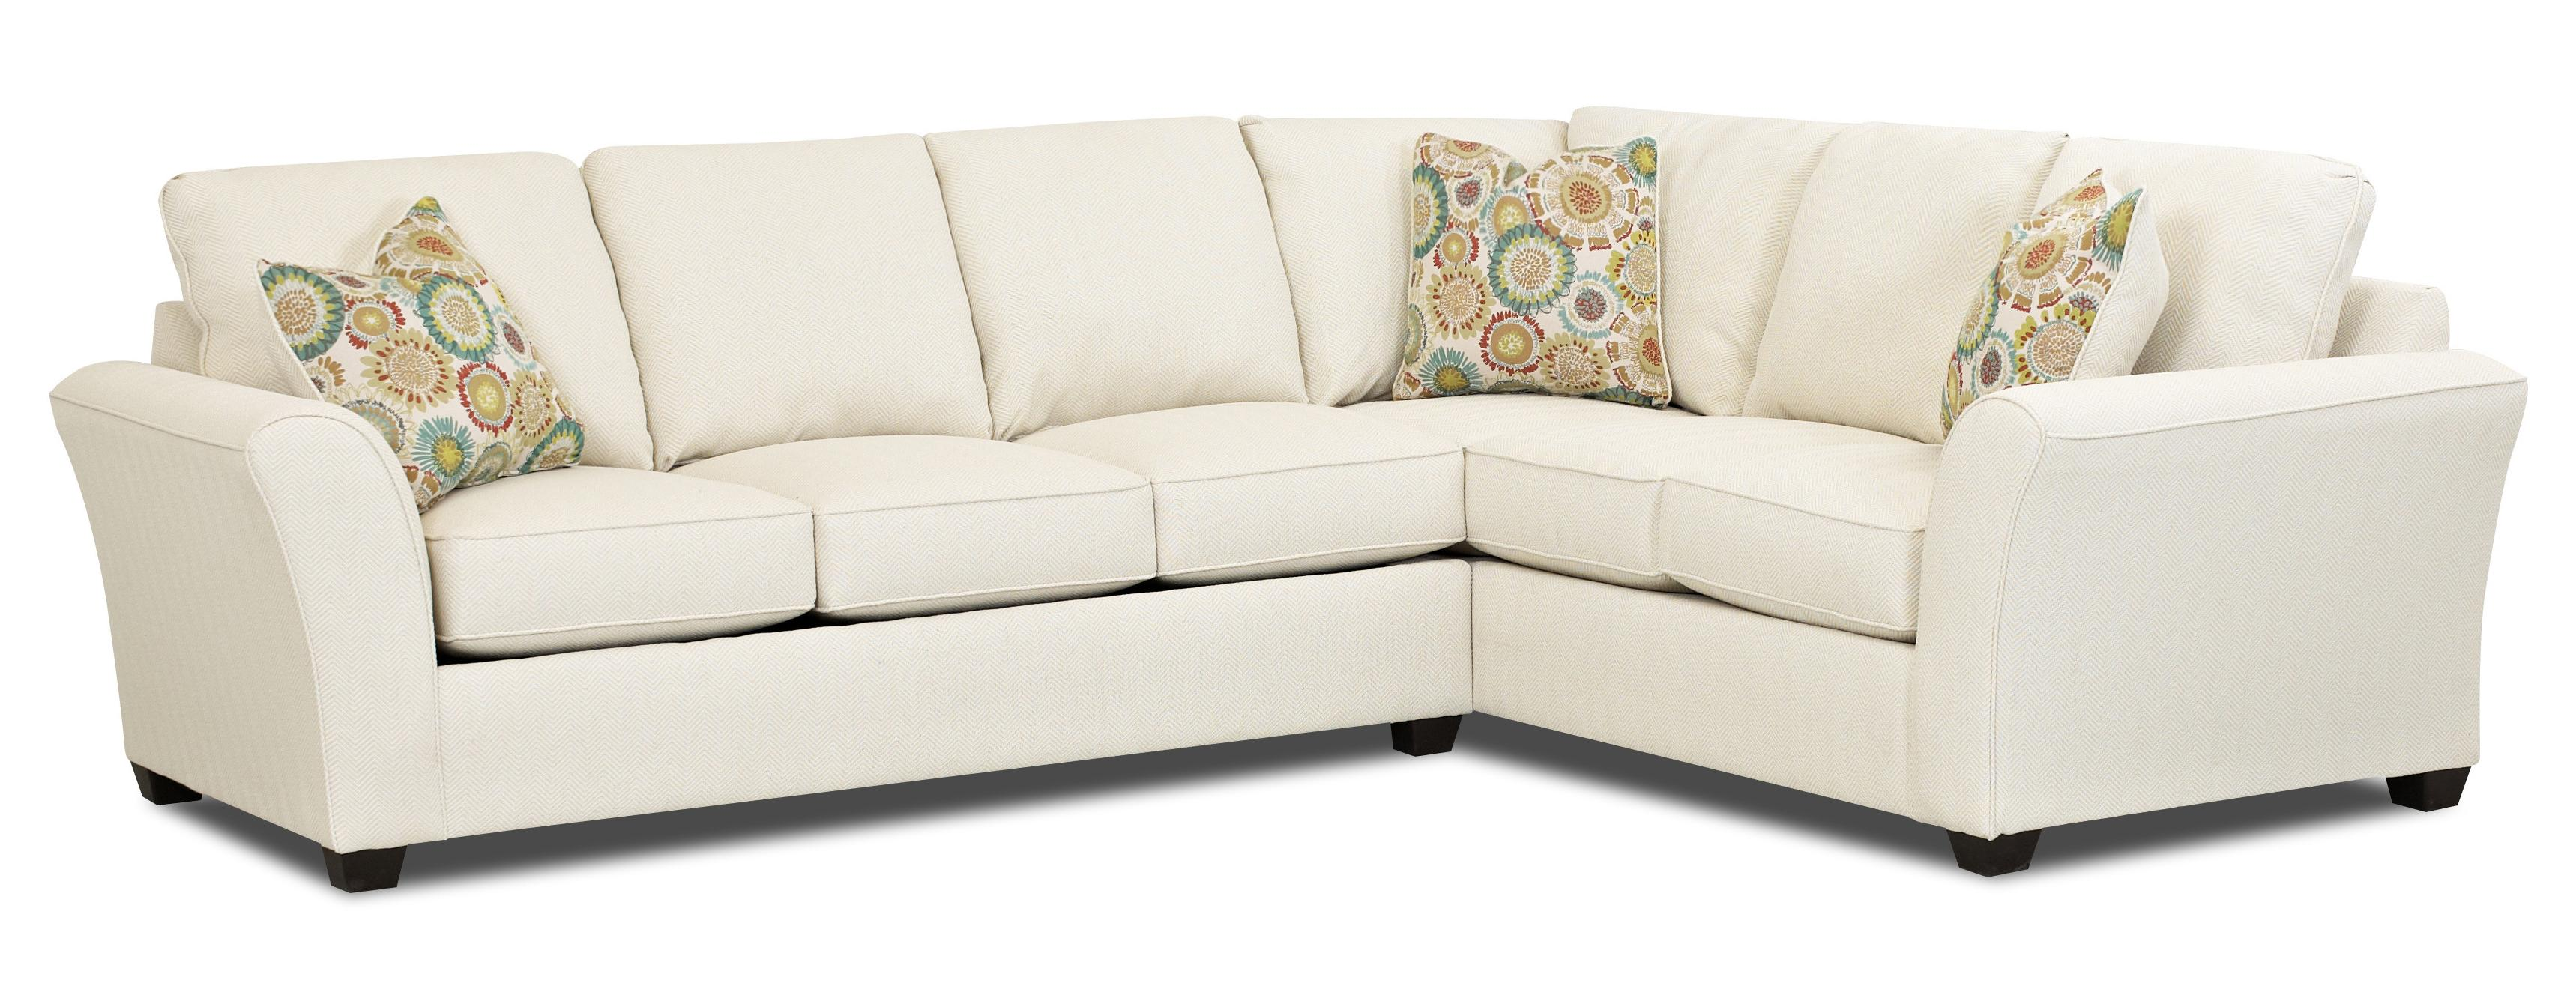 cheap sleeper sofas walmart of sofa affordable also cool furniture